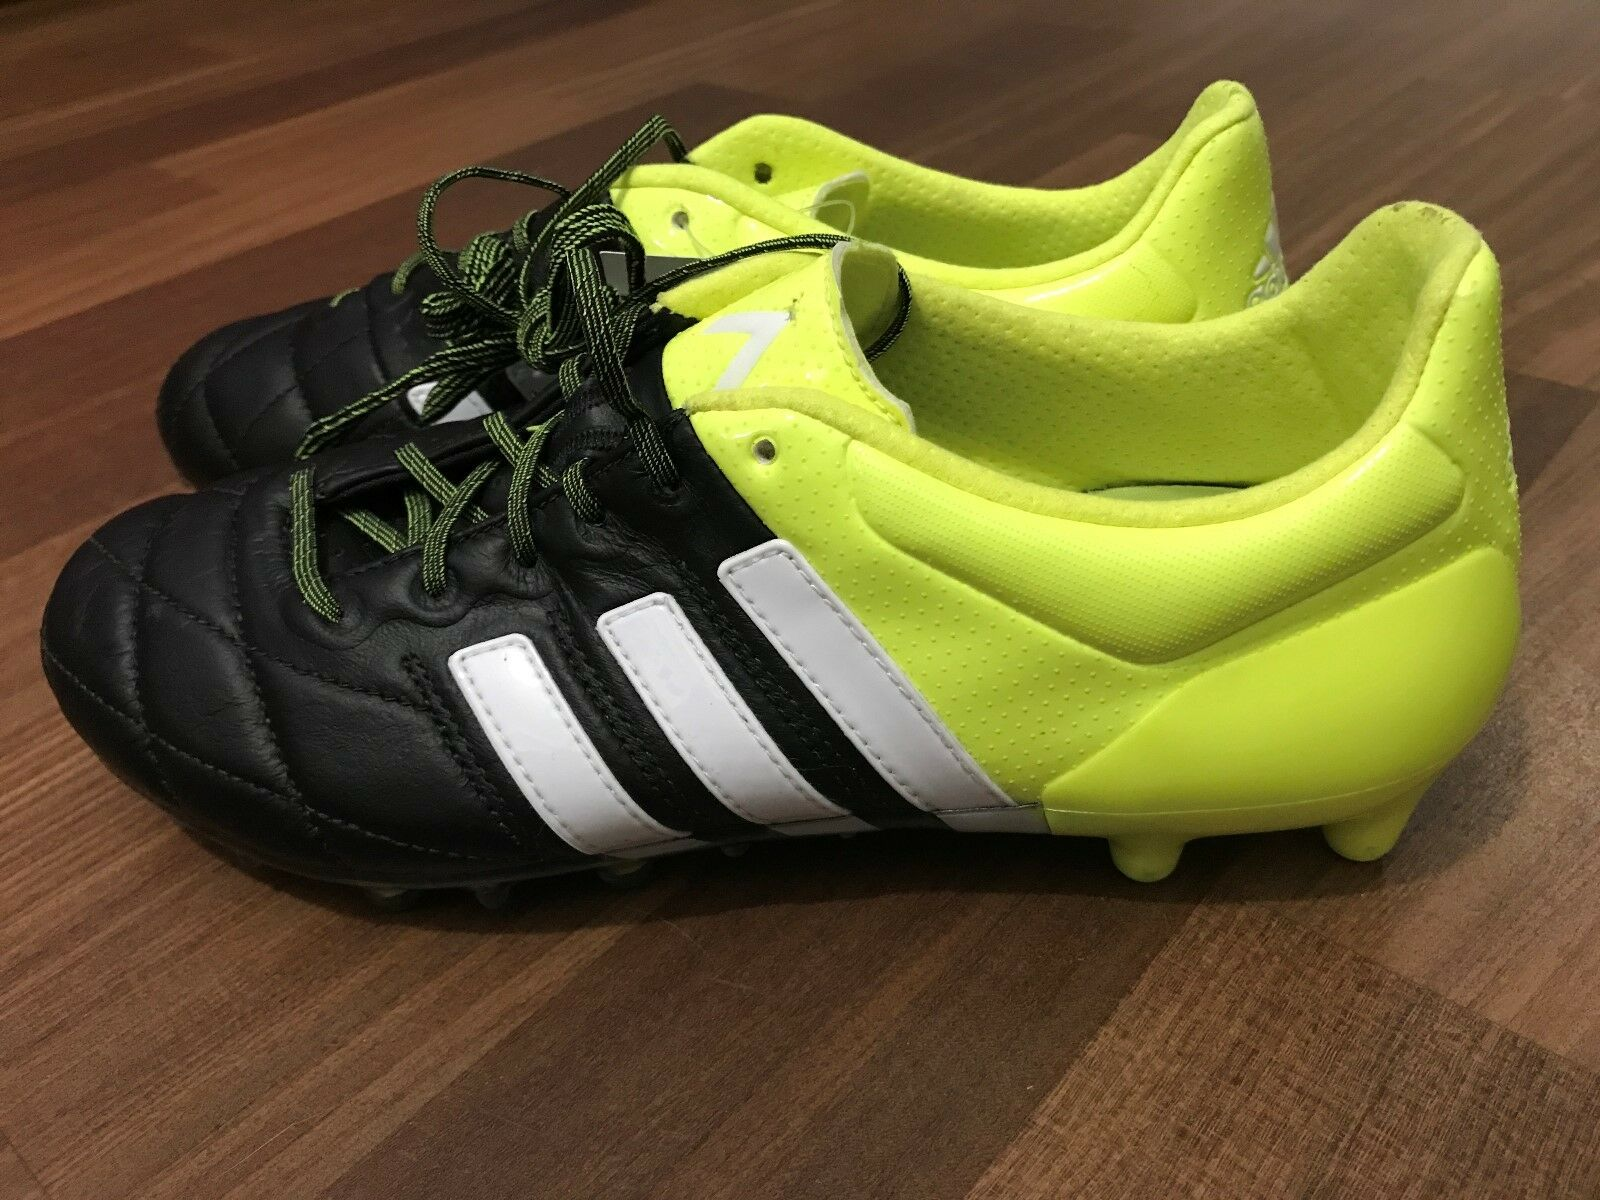 official photos 875c9 0ec49 SCARPE DA CALCIO ADIDAS ACE 15.1 15.1 15.1 FG AG LEATHER - B32818 - NUOVE -  PROFESSIONALI b982e0